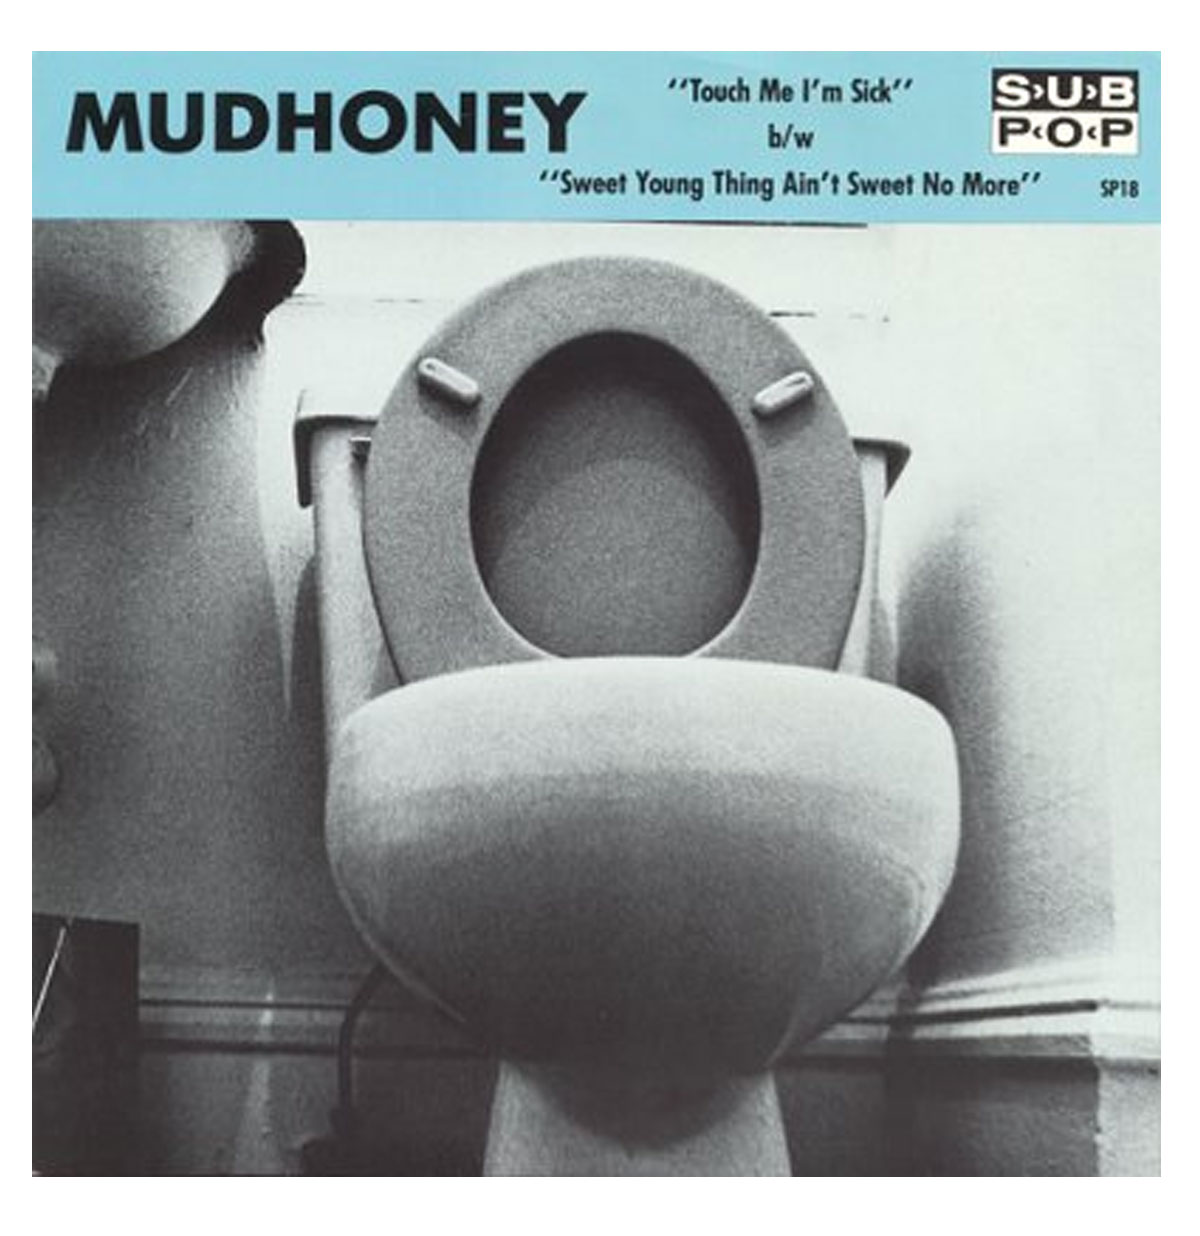 Single: Mudhoney - Touch Me I'm Sick / Sweet Young Thing Ain't Sweet No More